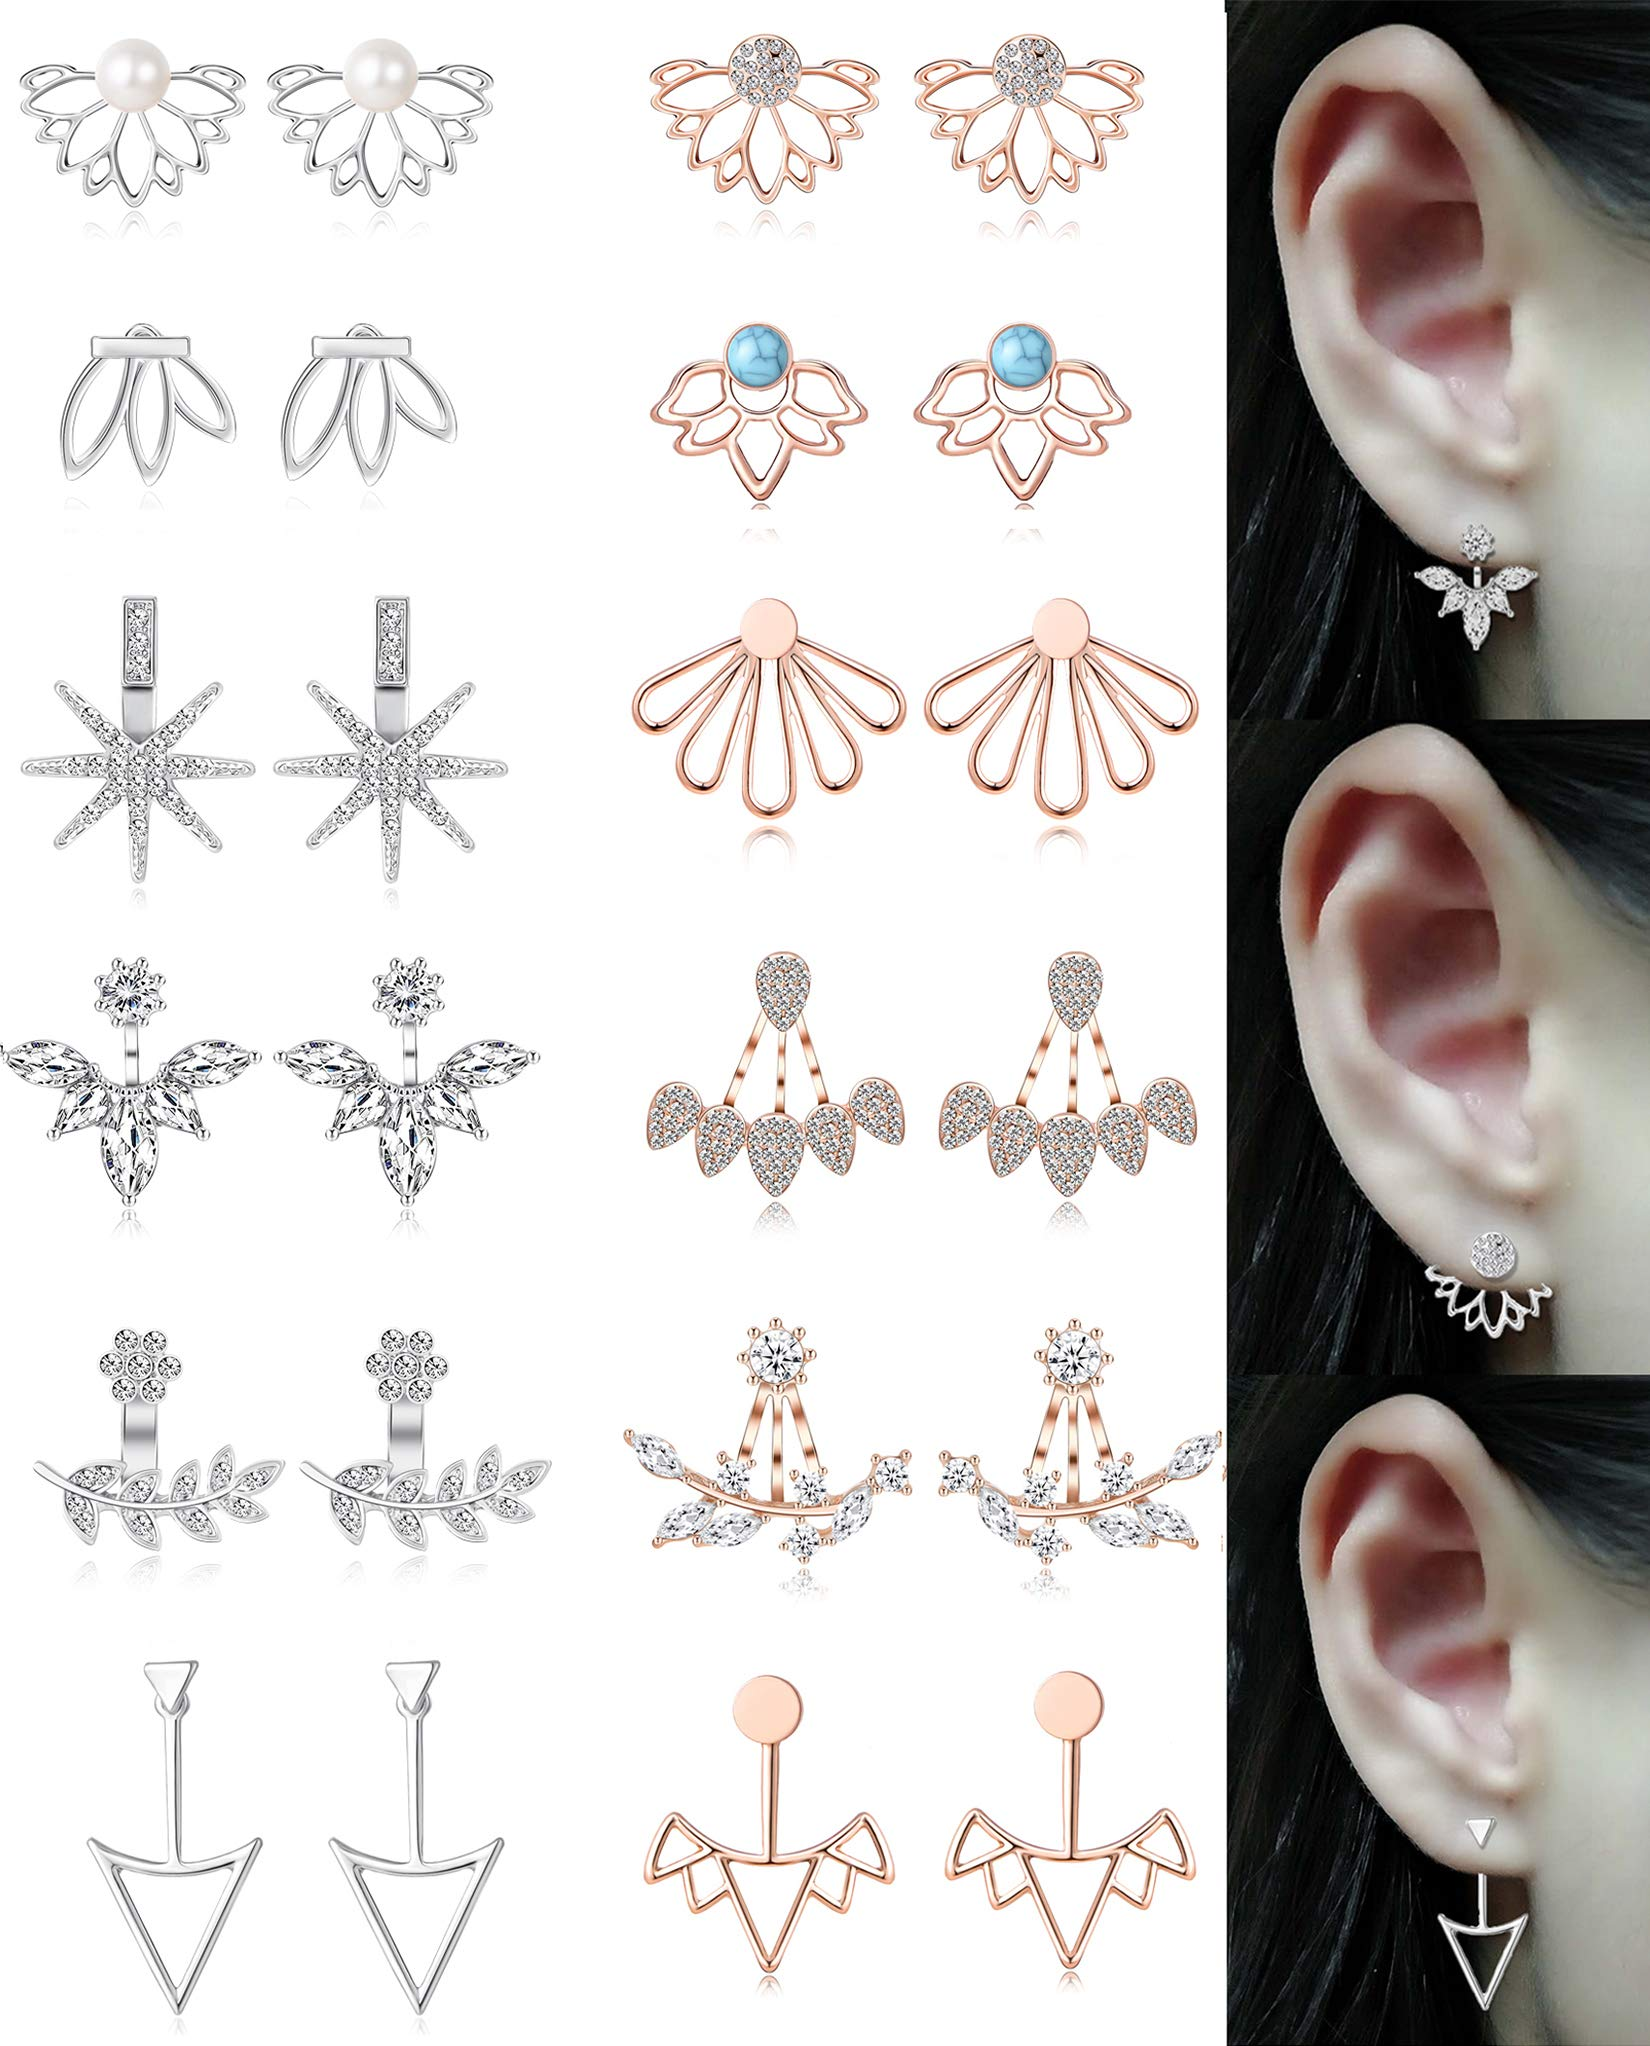 Tornito 12 Pairs Lotus Flower Earring Studs Chic CZ Earrings Jackets For Women Girls Silver Rose Gold Tone (A2:12 Pairs, Silver&Rose Gold Tone)